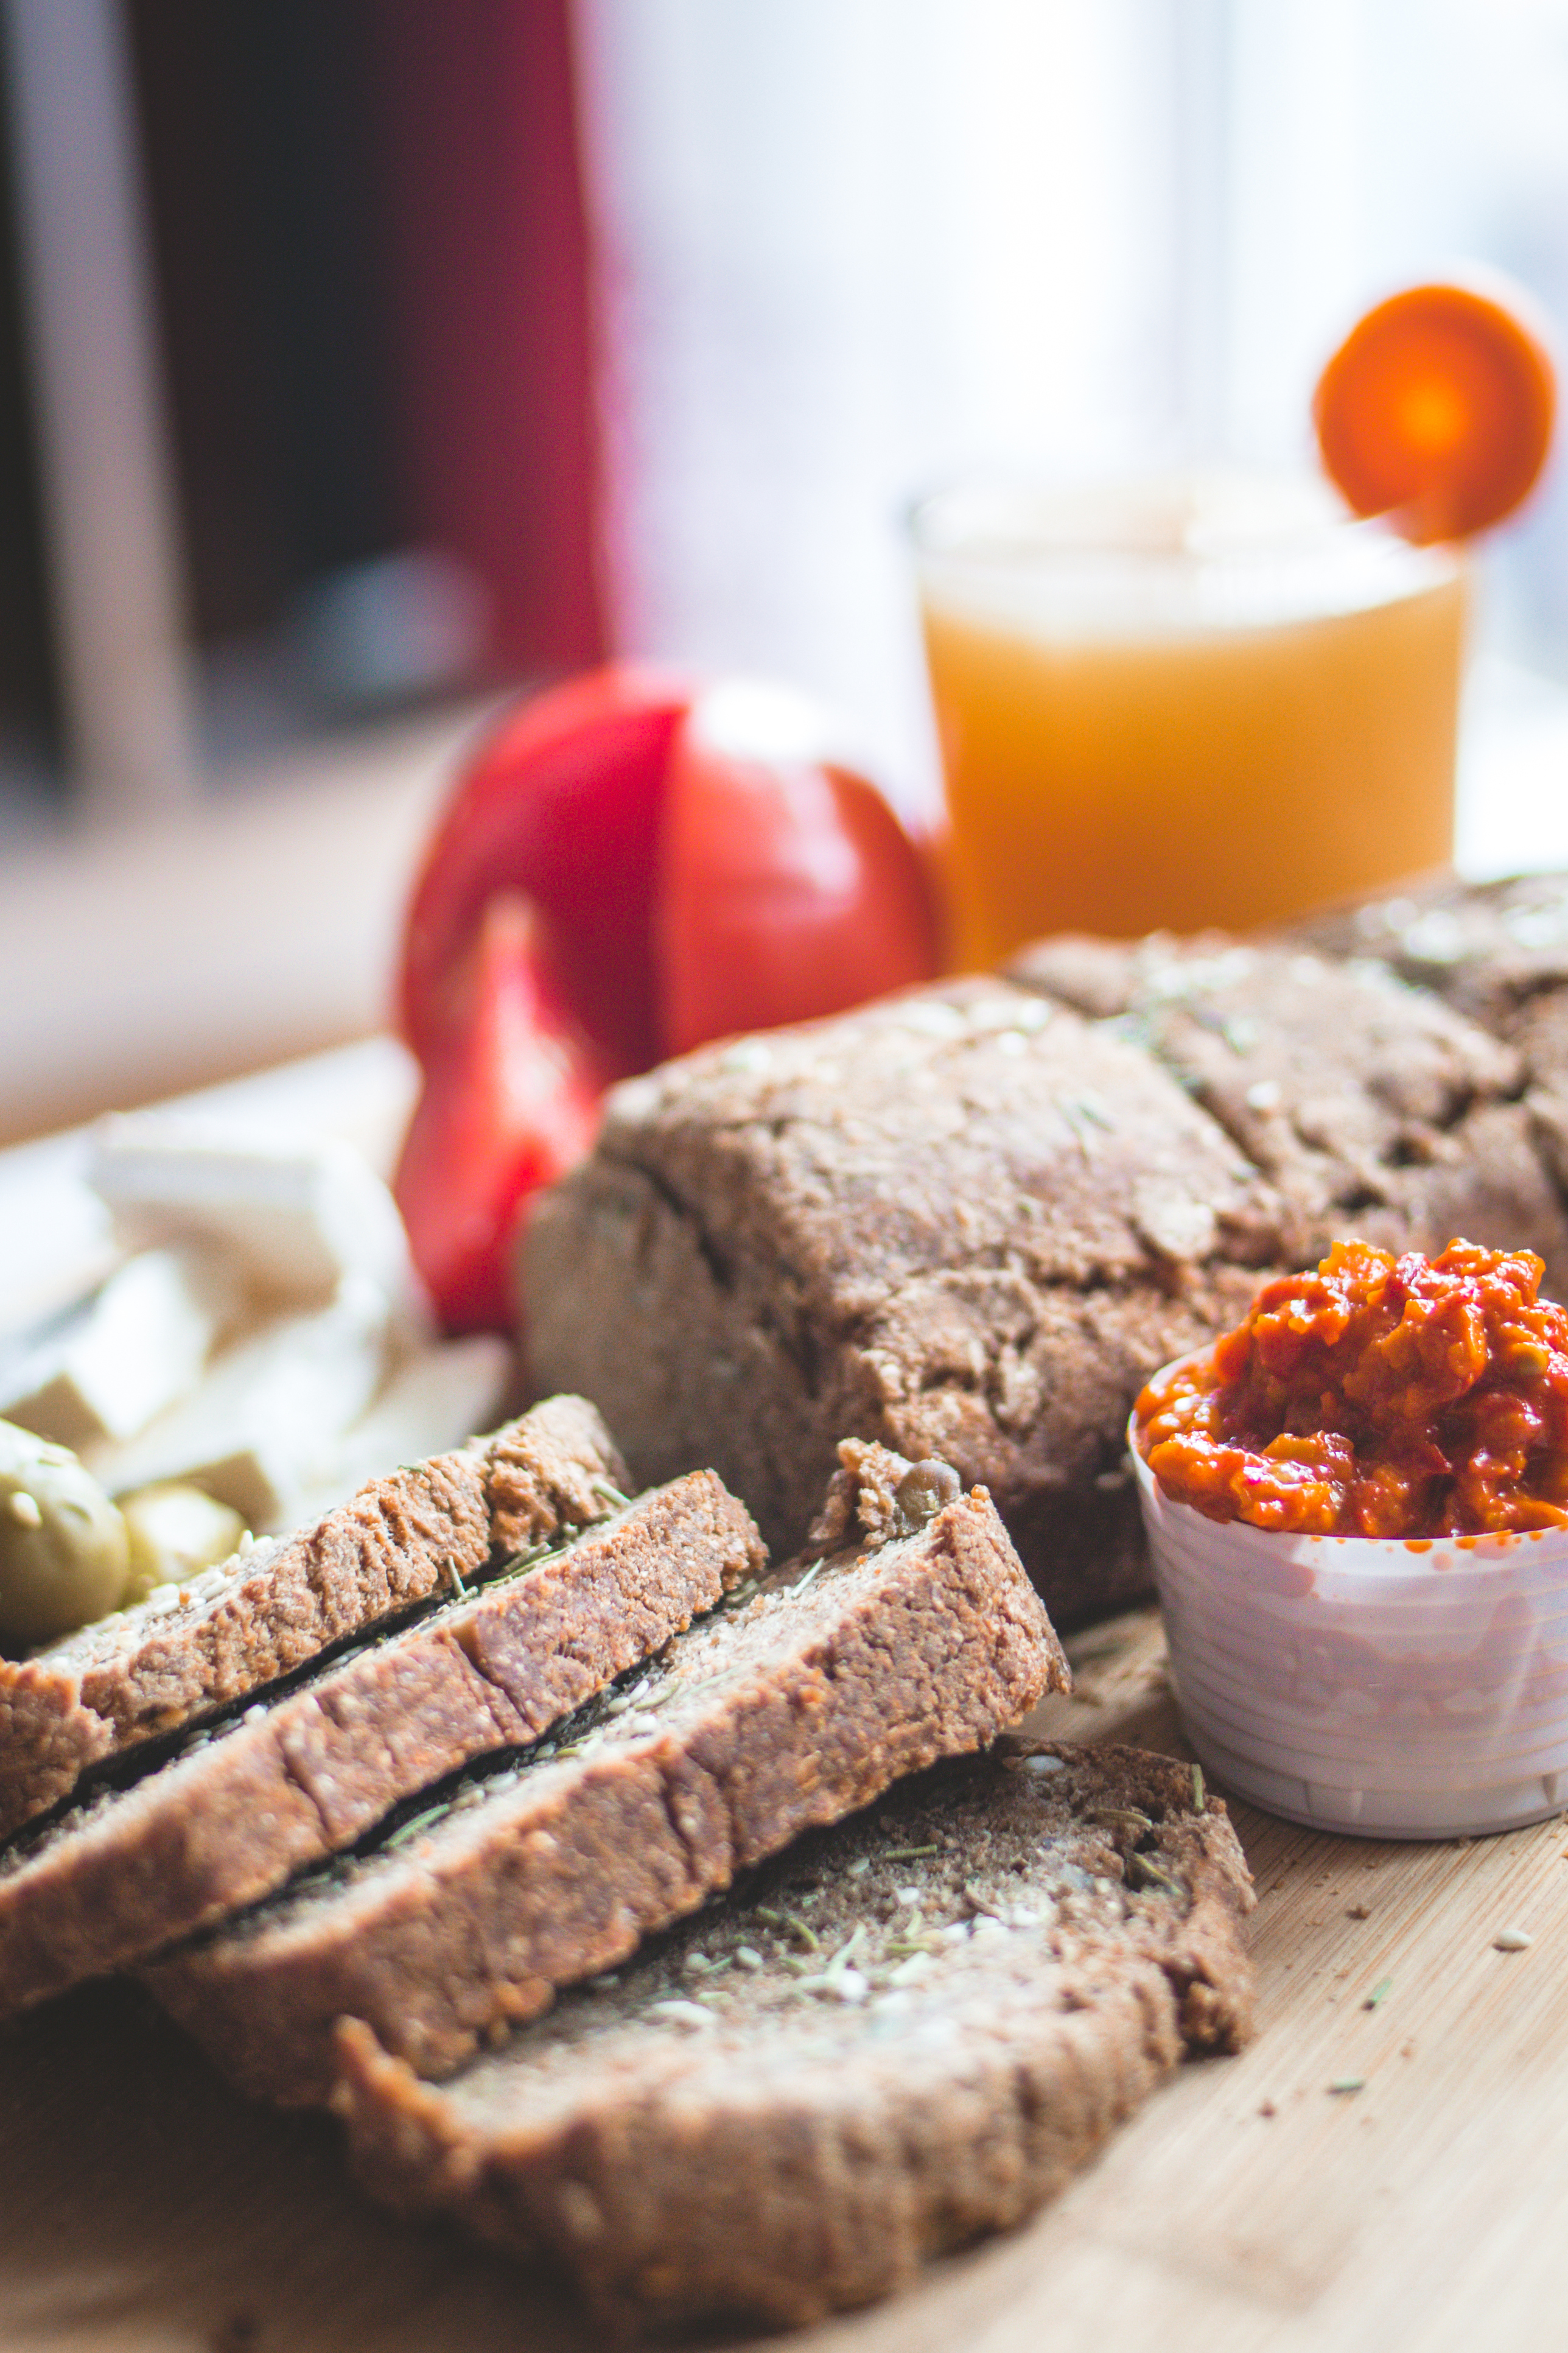 Chrono, organic, unleavened bread with various seeds, pumpkin, sunflower, flax seeds, carot juice, tomato, cheese, olives, ajvar on wooden board